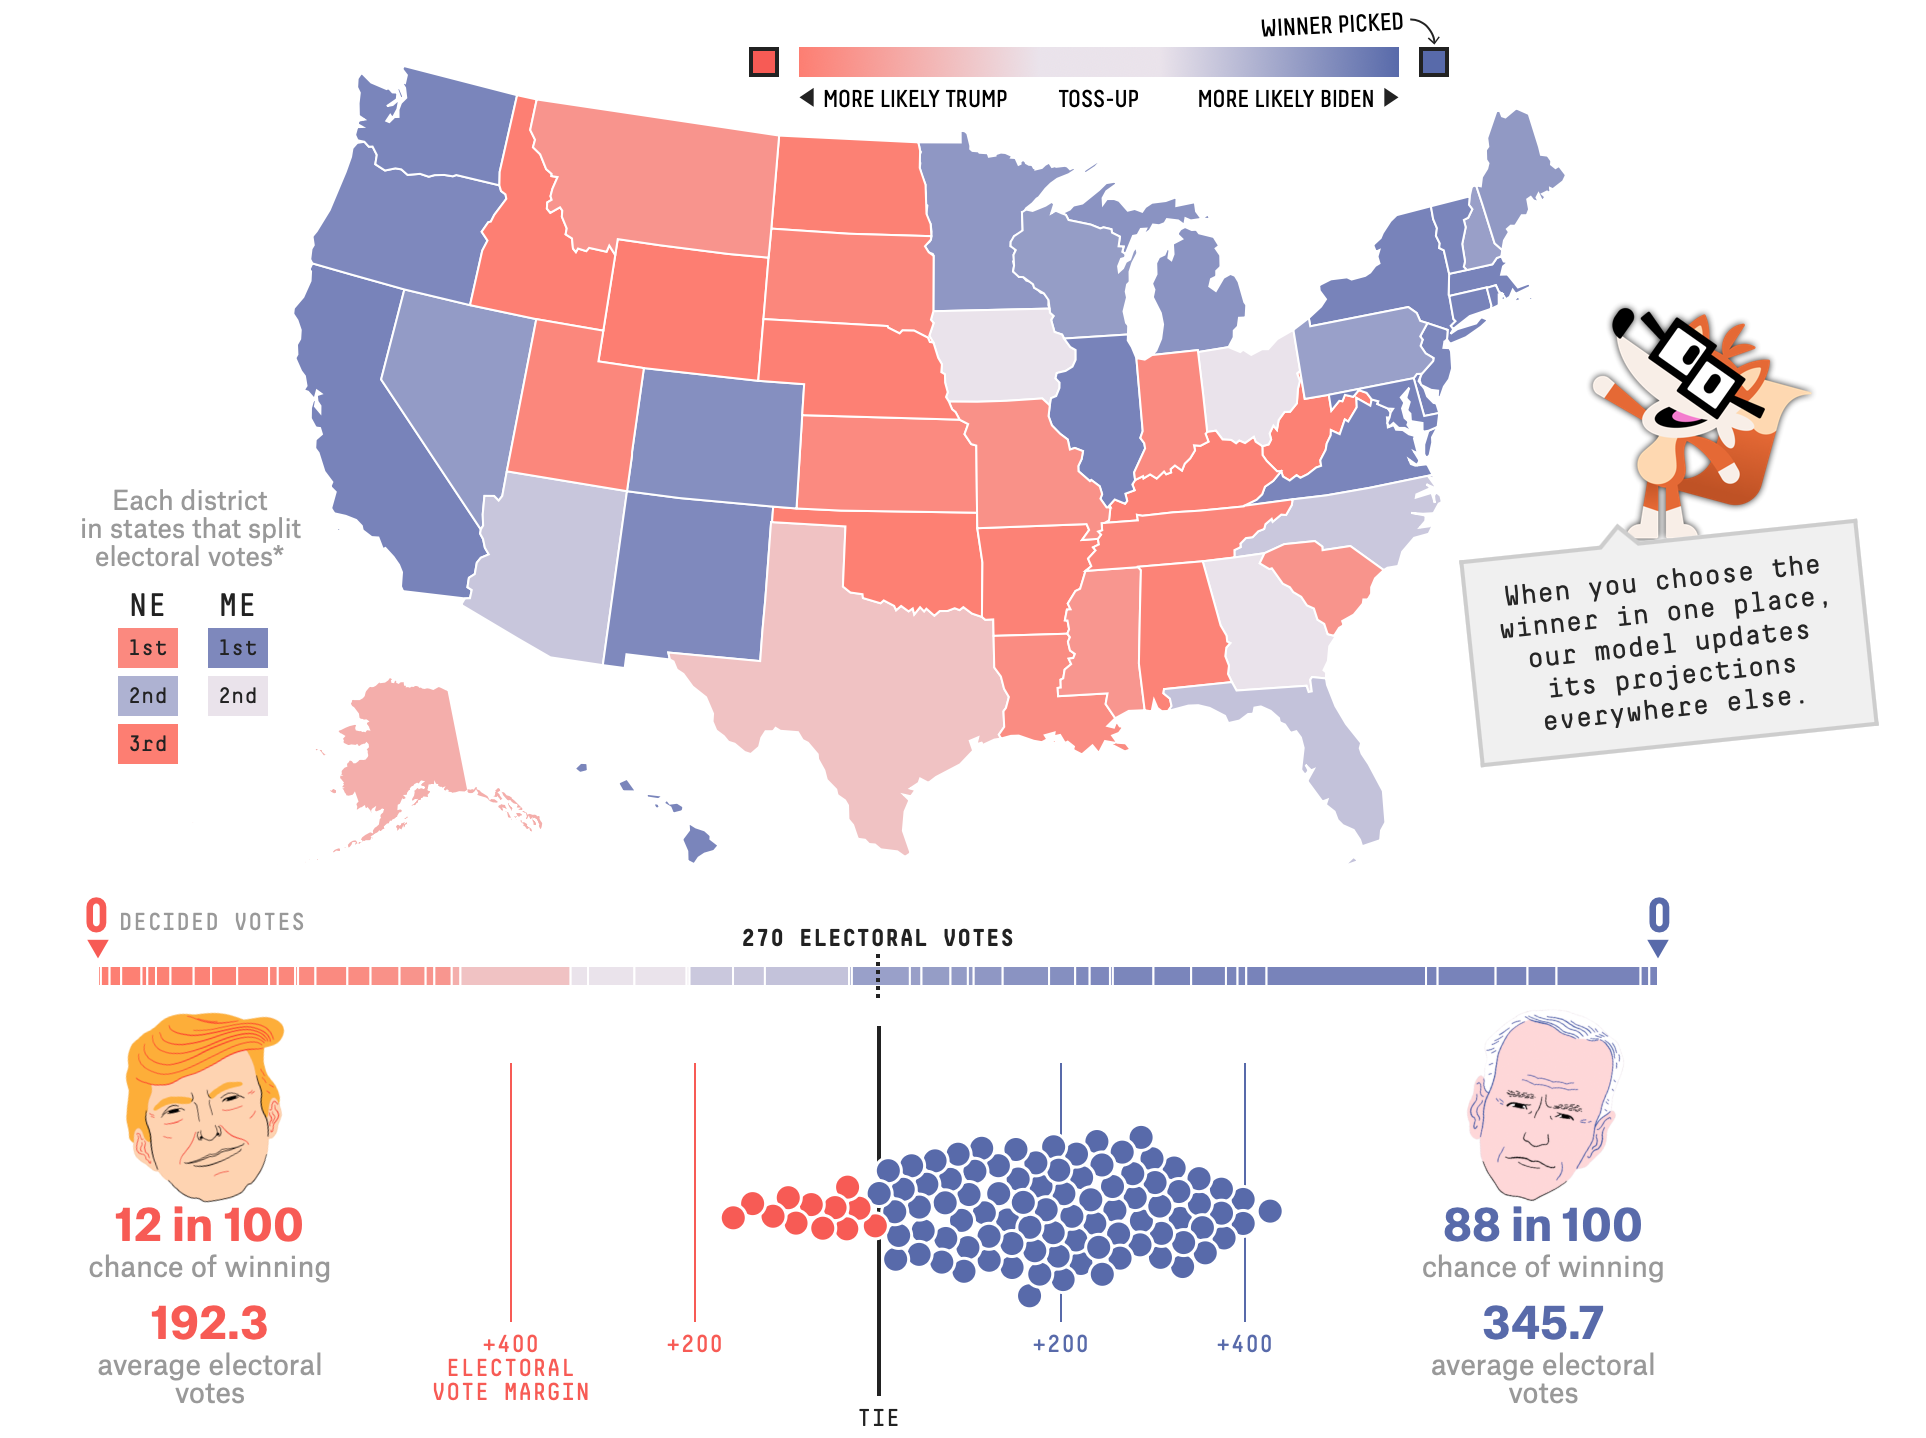 Using the FiveThirtyEight model, see how the election odds shift with different scenarios